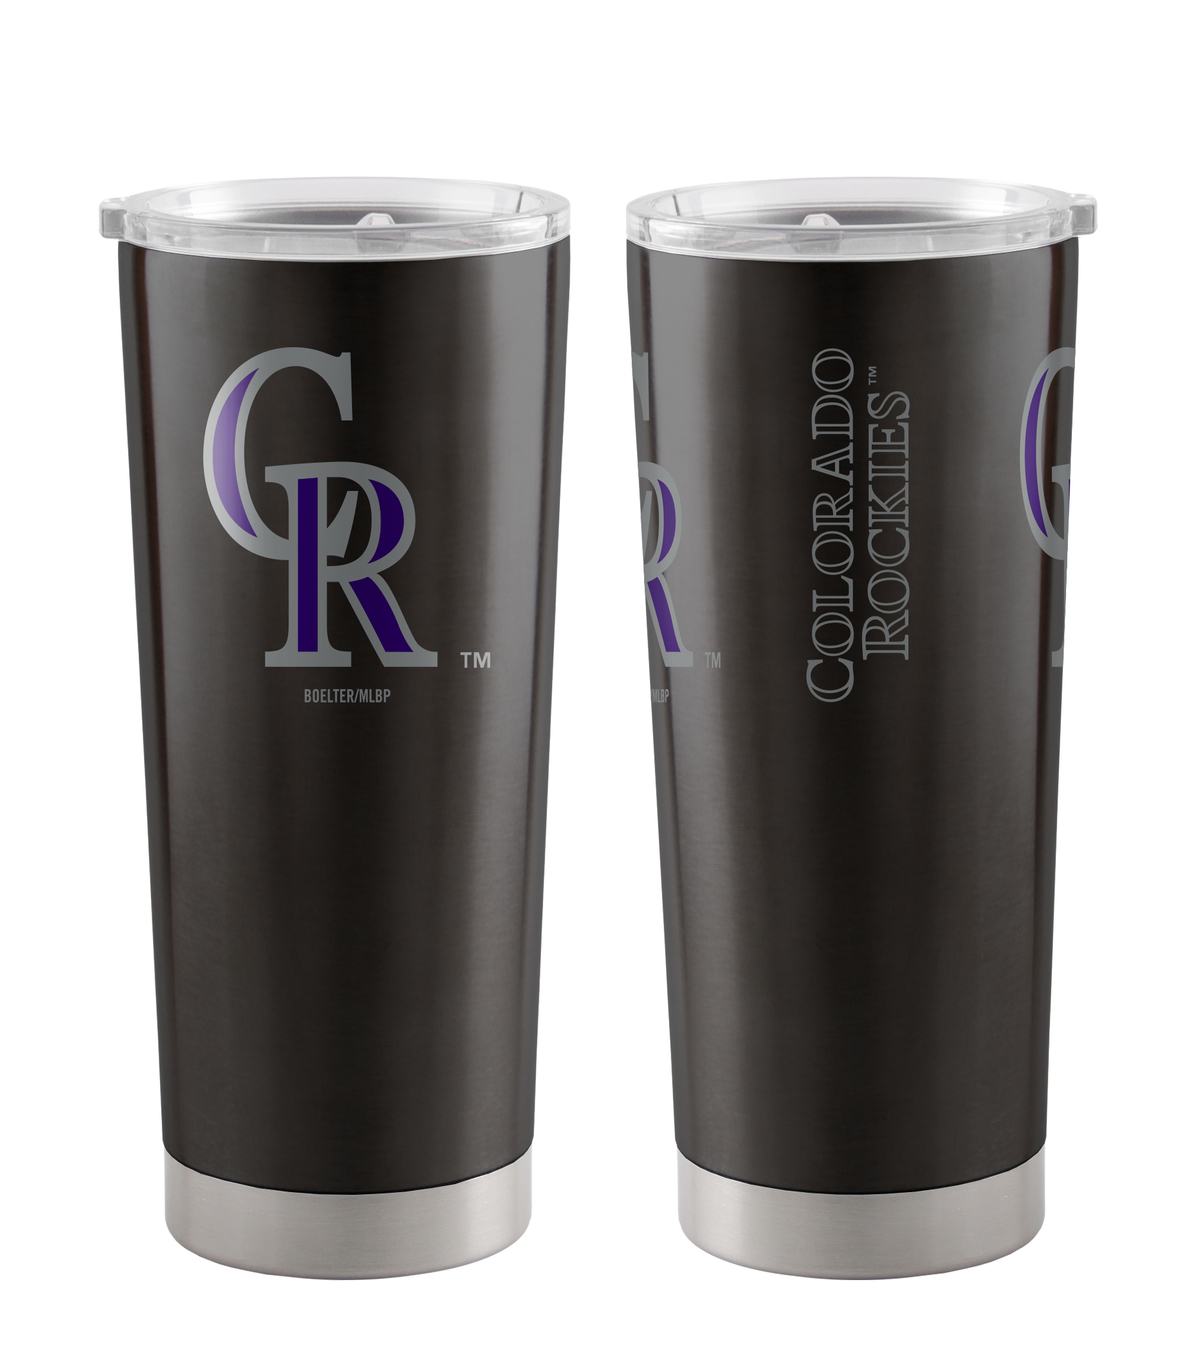 Colorado Rockies 20 oz Insulated Stainless Steel Tumbler